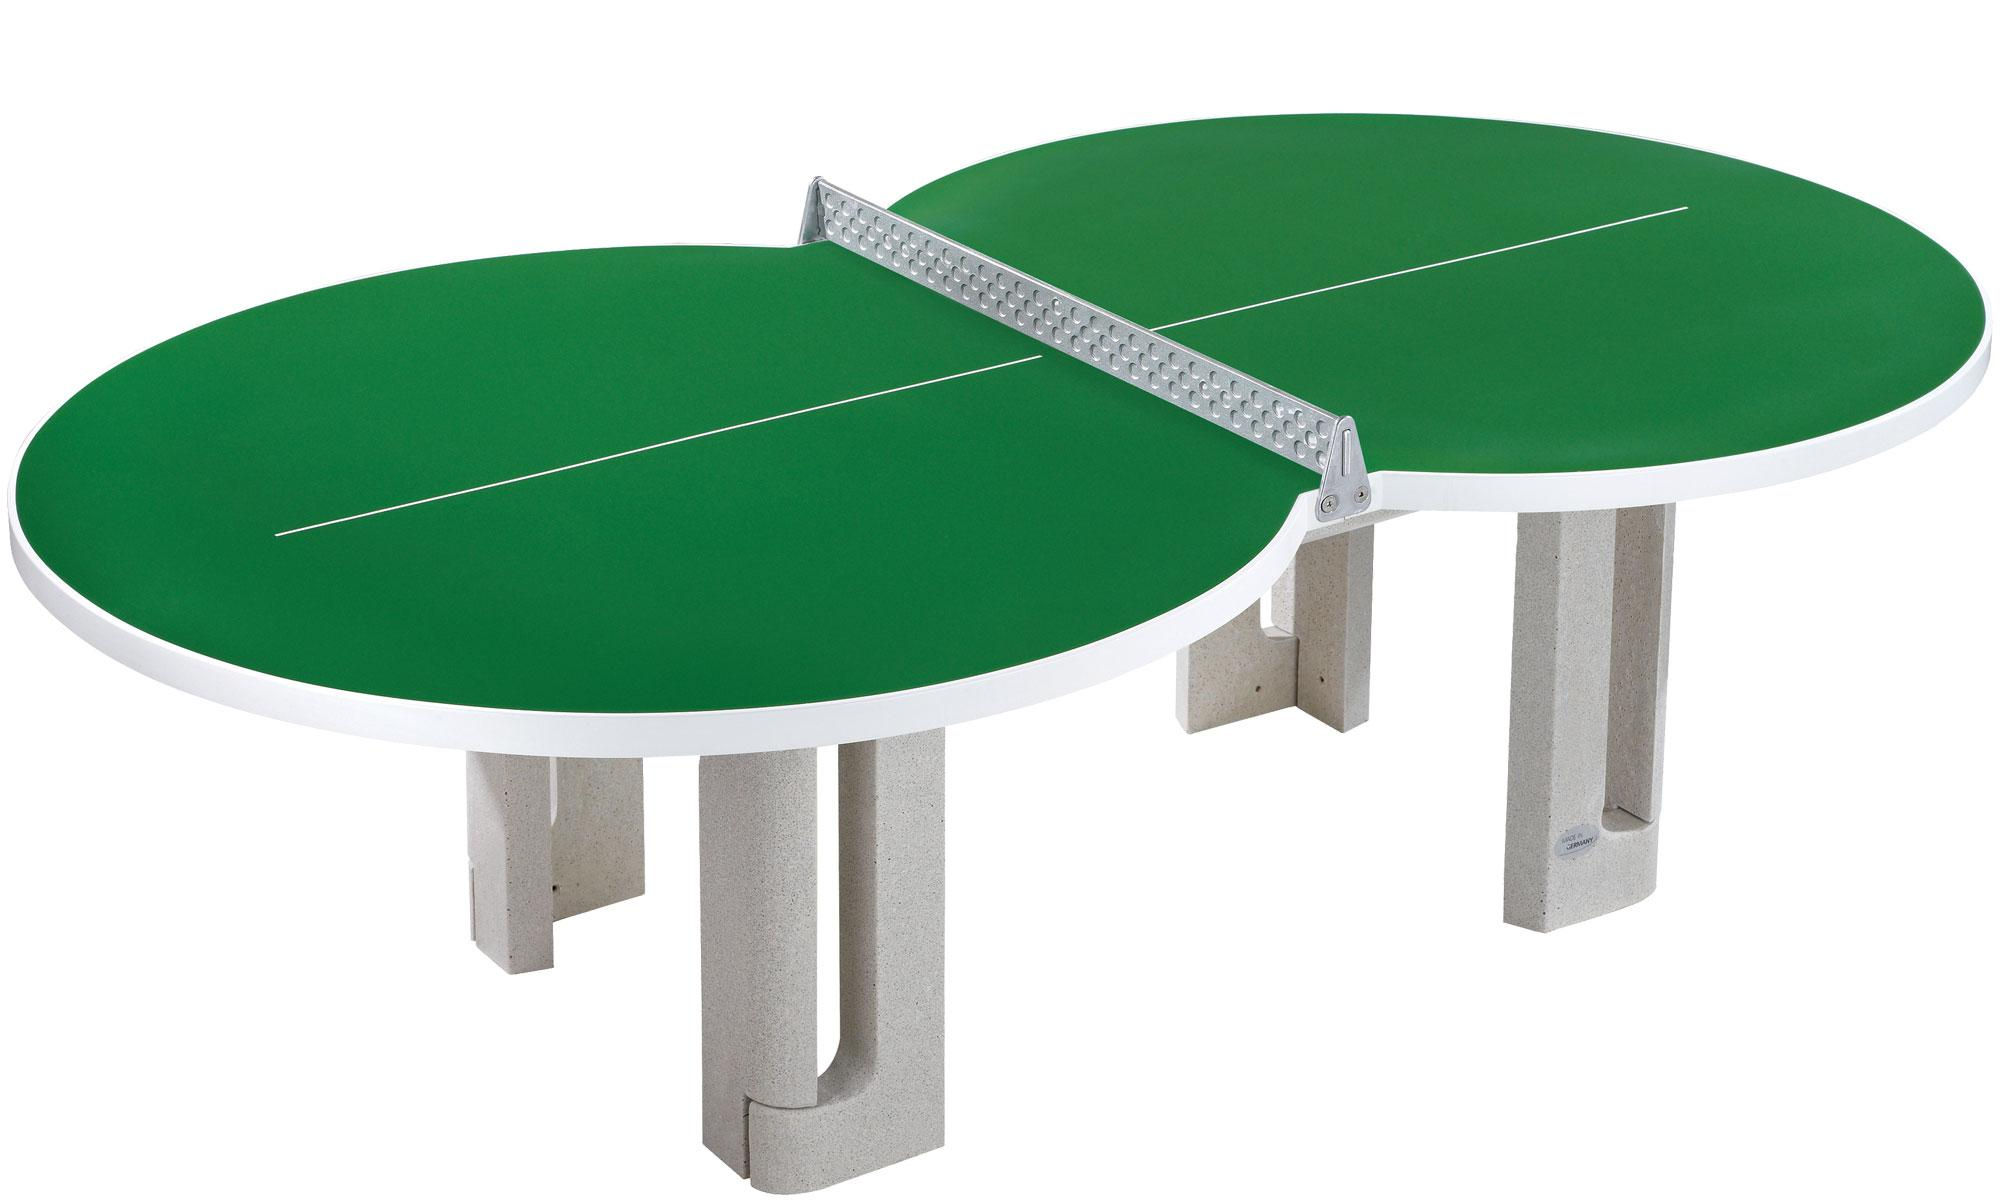 Butterfly F8 Polymer Concrete Table Tennis Table